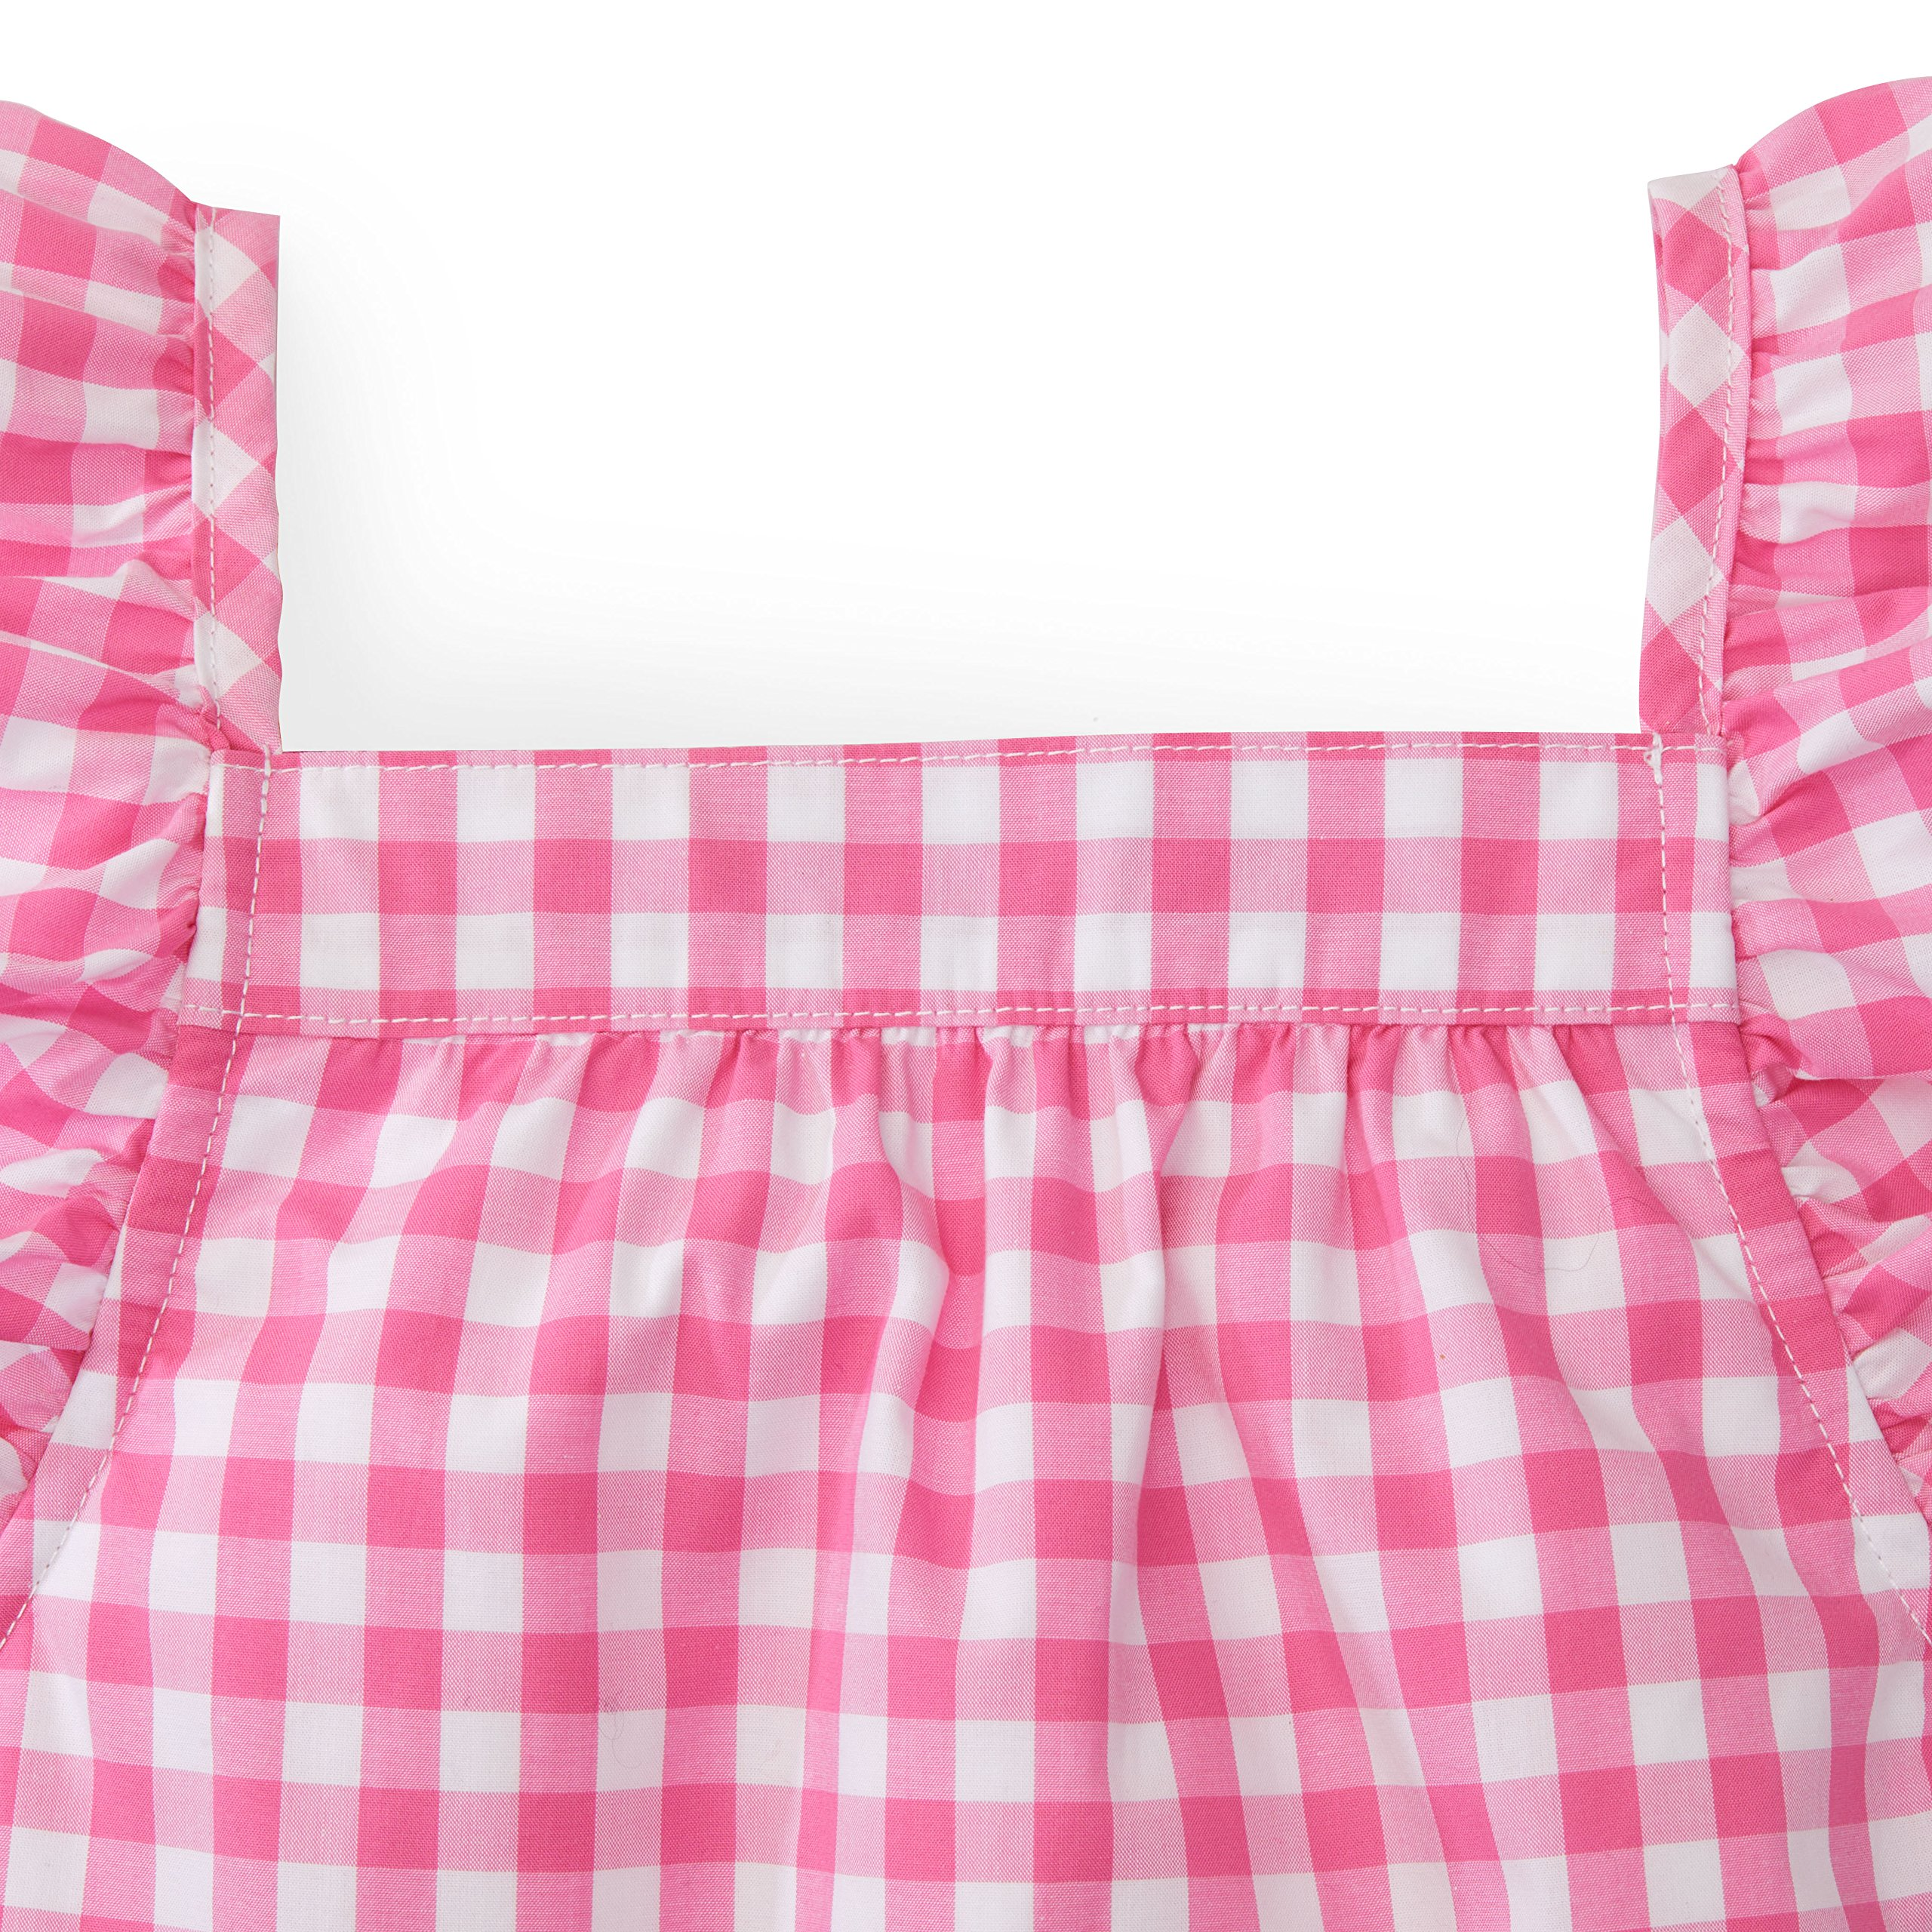 Hope & Henry Girls' Pink Gingham Frill Sleeve Woven Dress Made with Organic Cotton by Hope & Henry (Image #2)